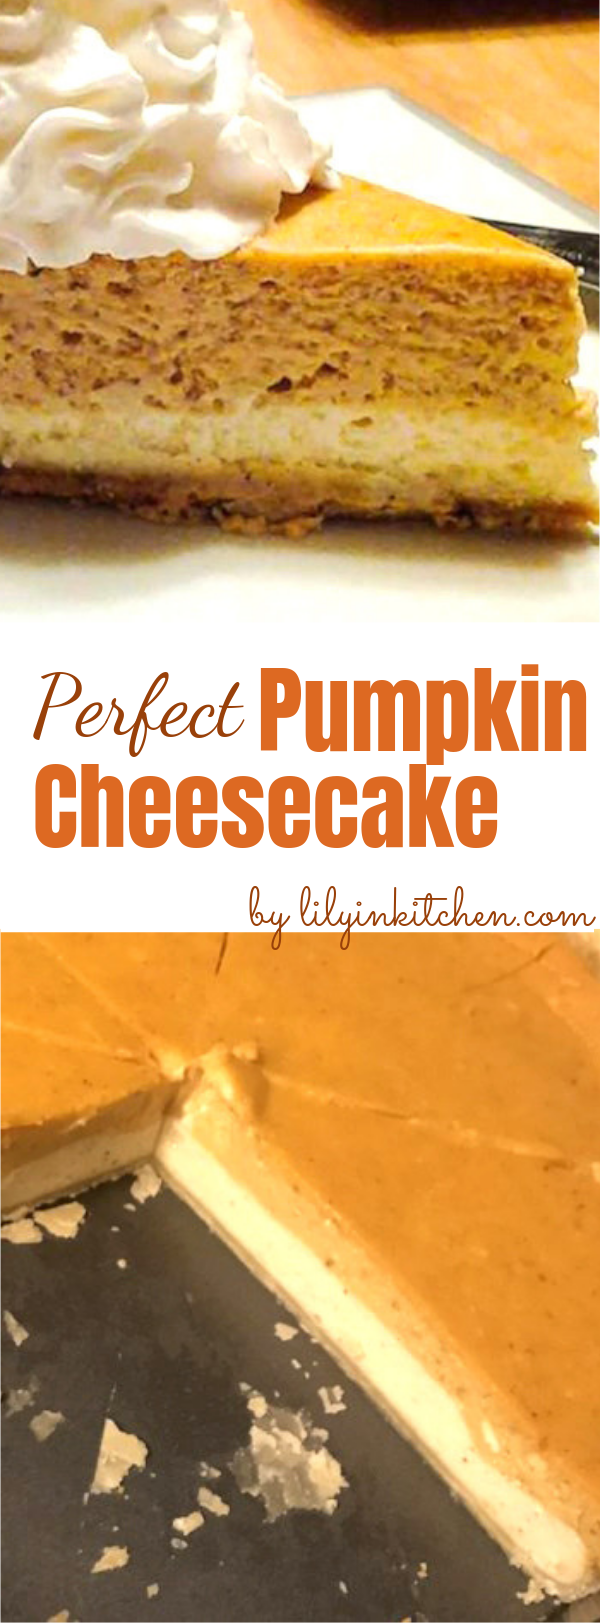 This Double Layer Pumpkin Cheesecake is a perfect dessert for holidays. Loaded with spice and pumpkin, and a layer of creamy cheesecake, it's definitely a crowd-pleaser! #pumpkin #thanksgiving #dessert #cheesecake #pumpkincheesecake